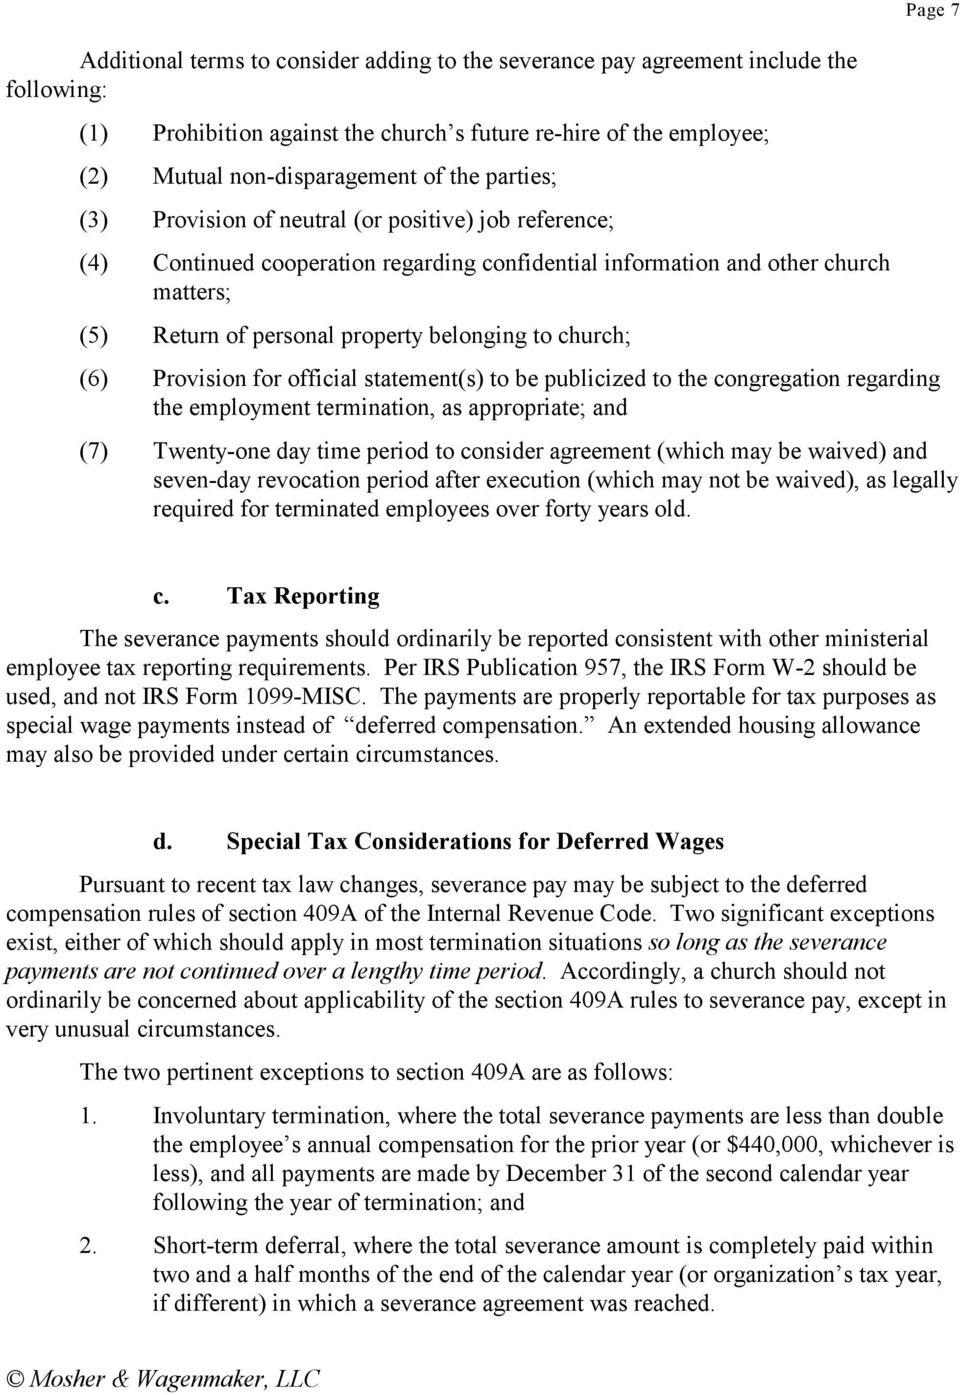 Church Employees And Severance Pay Pdf